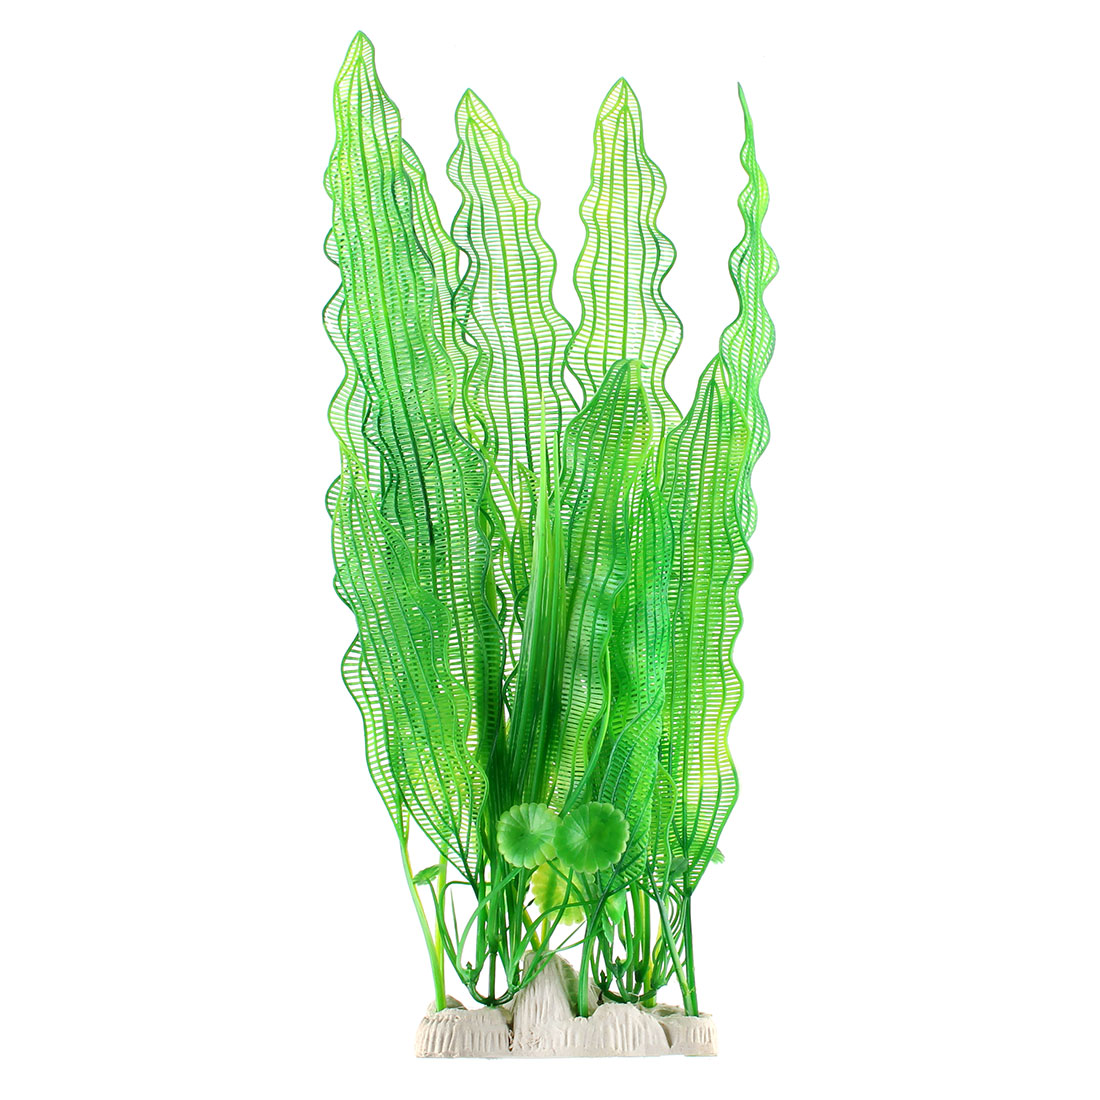 Aquarium Fish Tank Plastic Artificial Plant Aquatic Grass Decoration Green 40cm Height